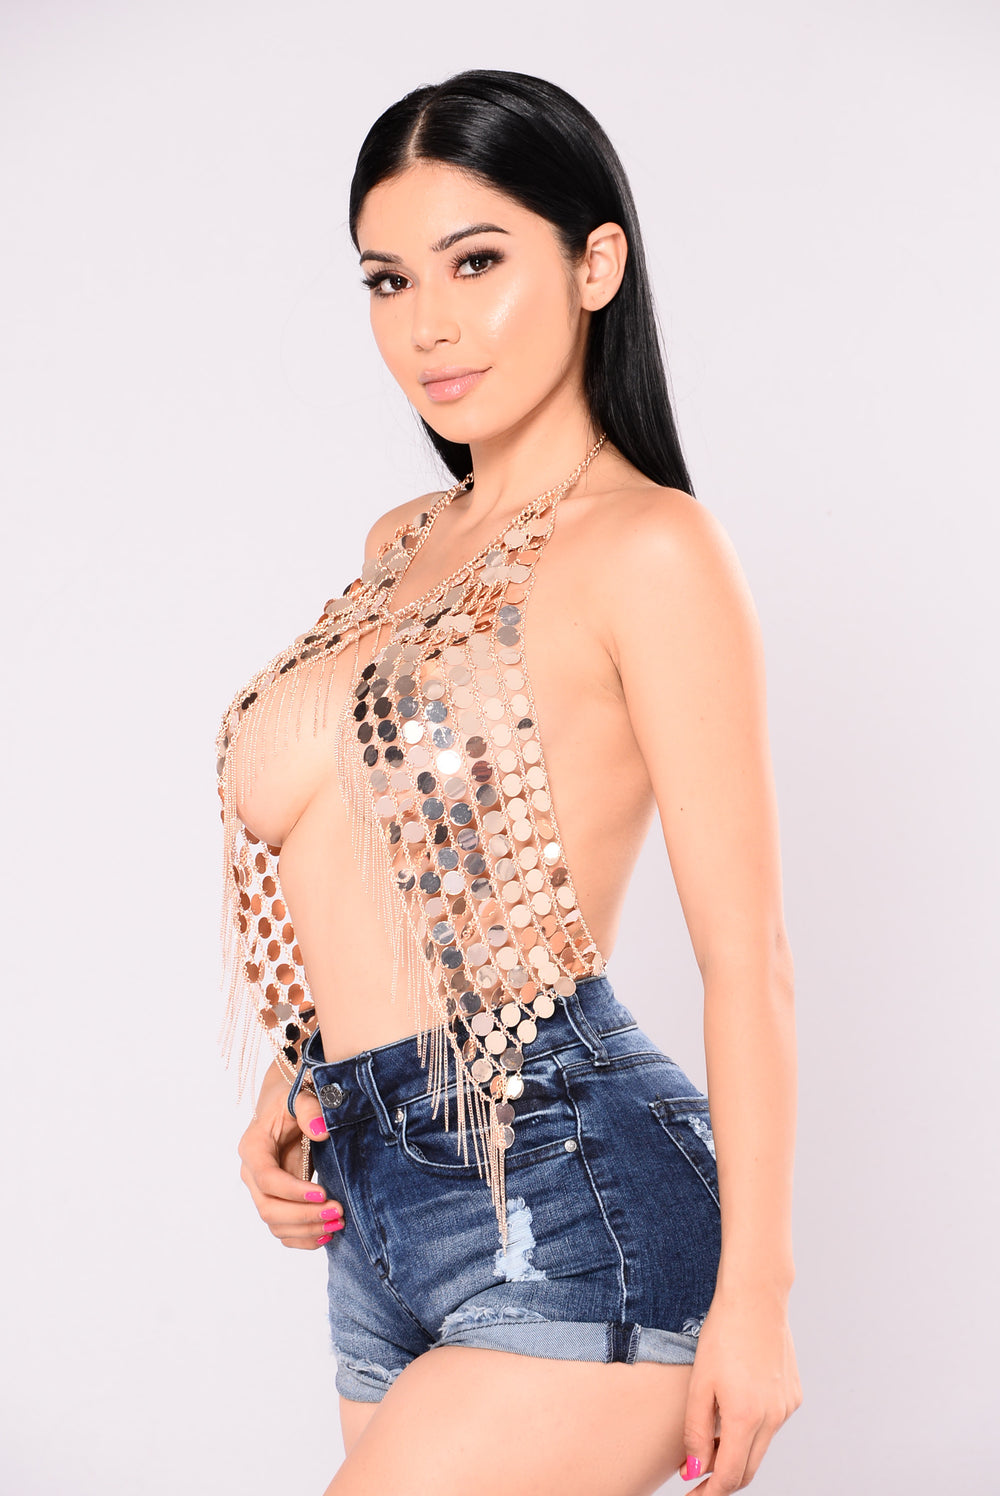 Glamazon Chain Top - Rose Gold